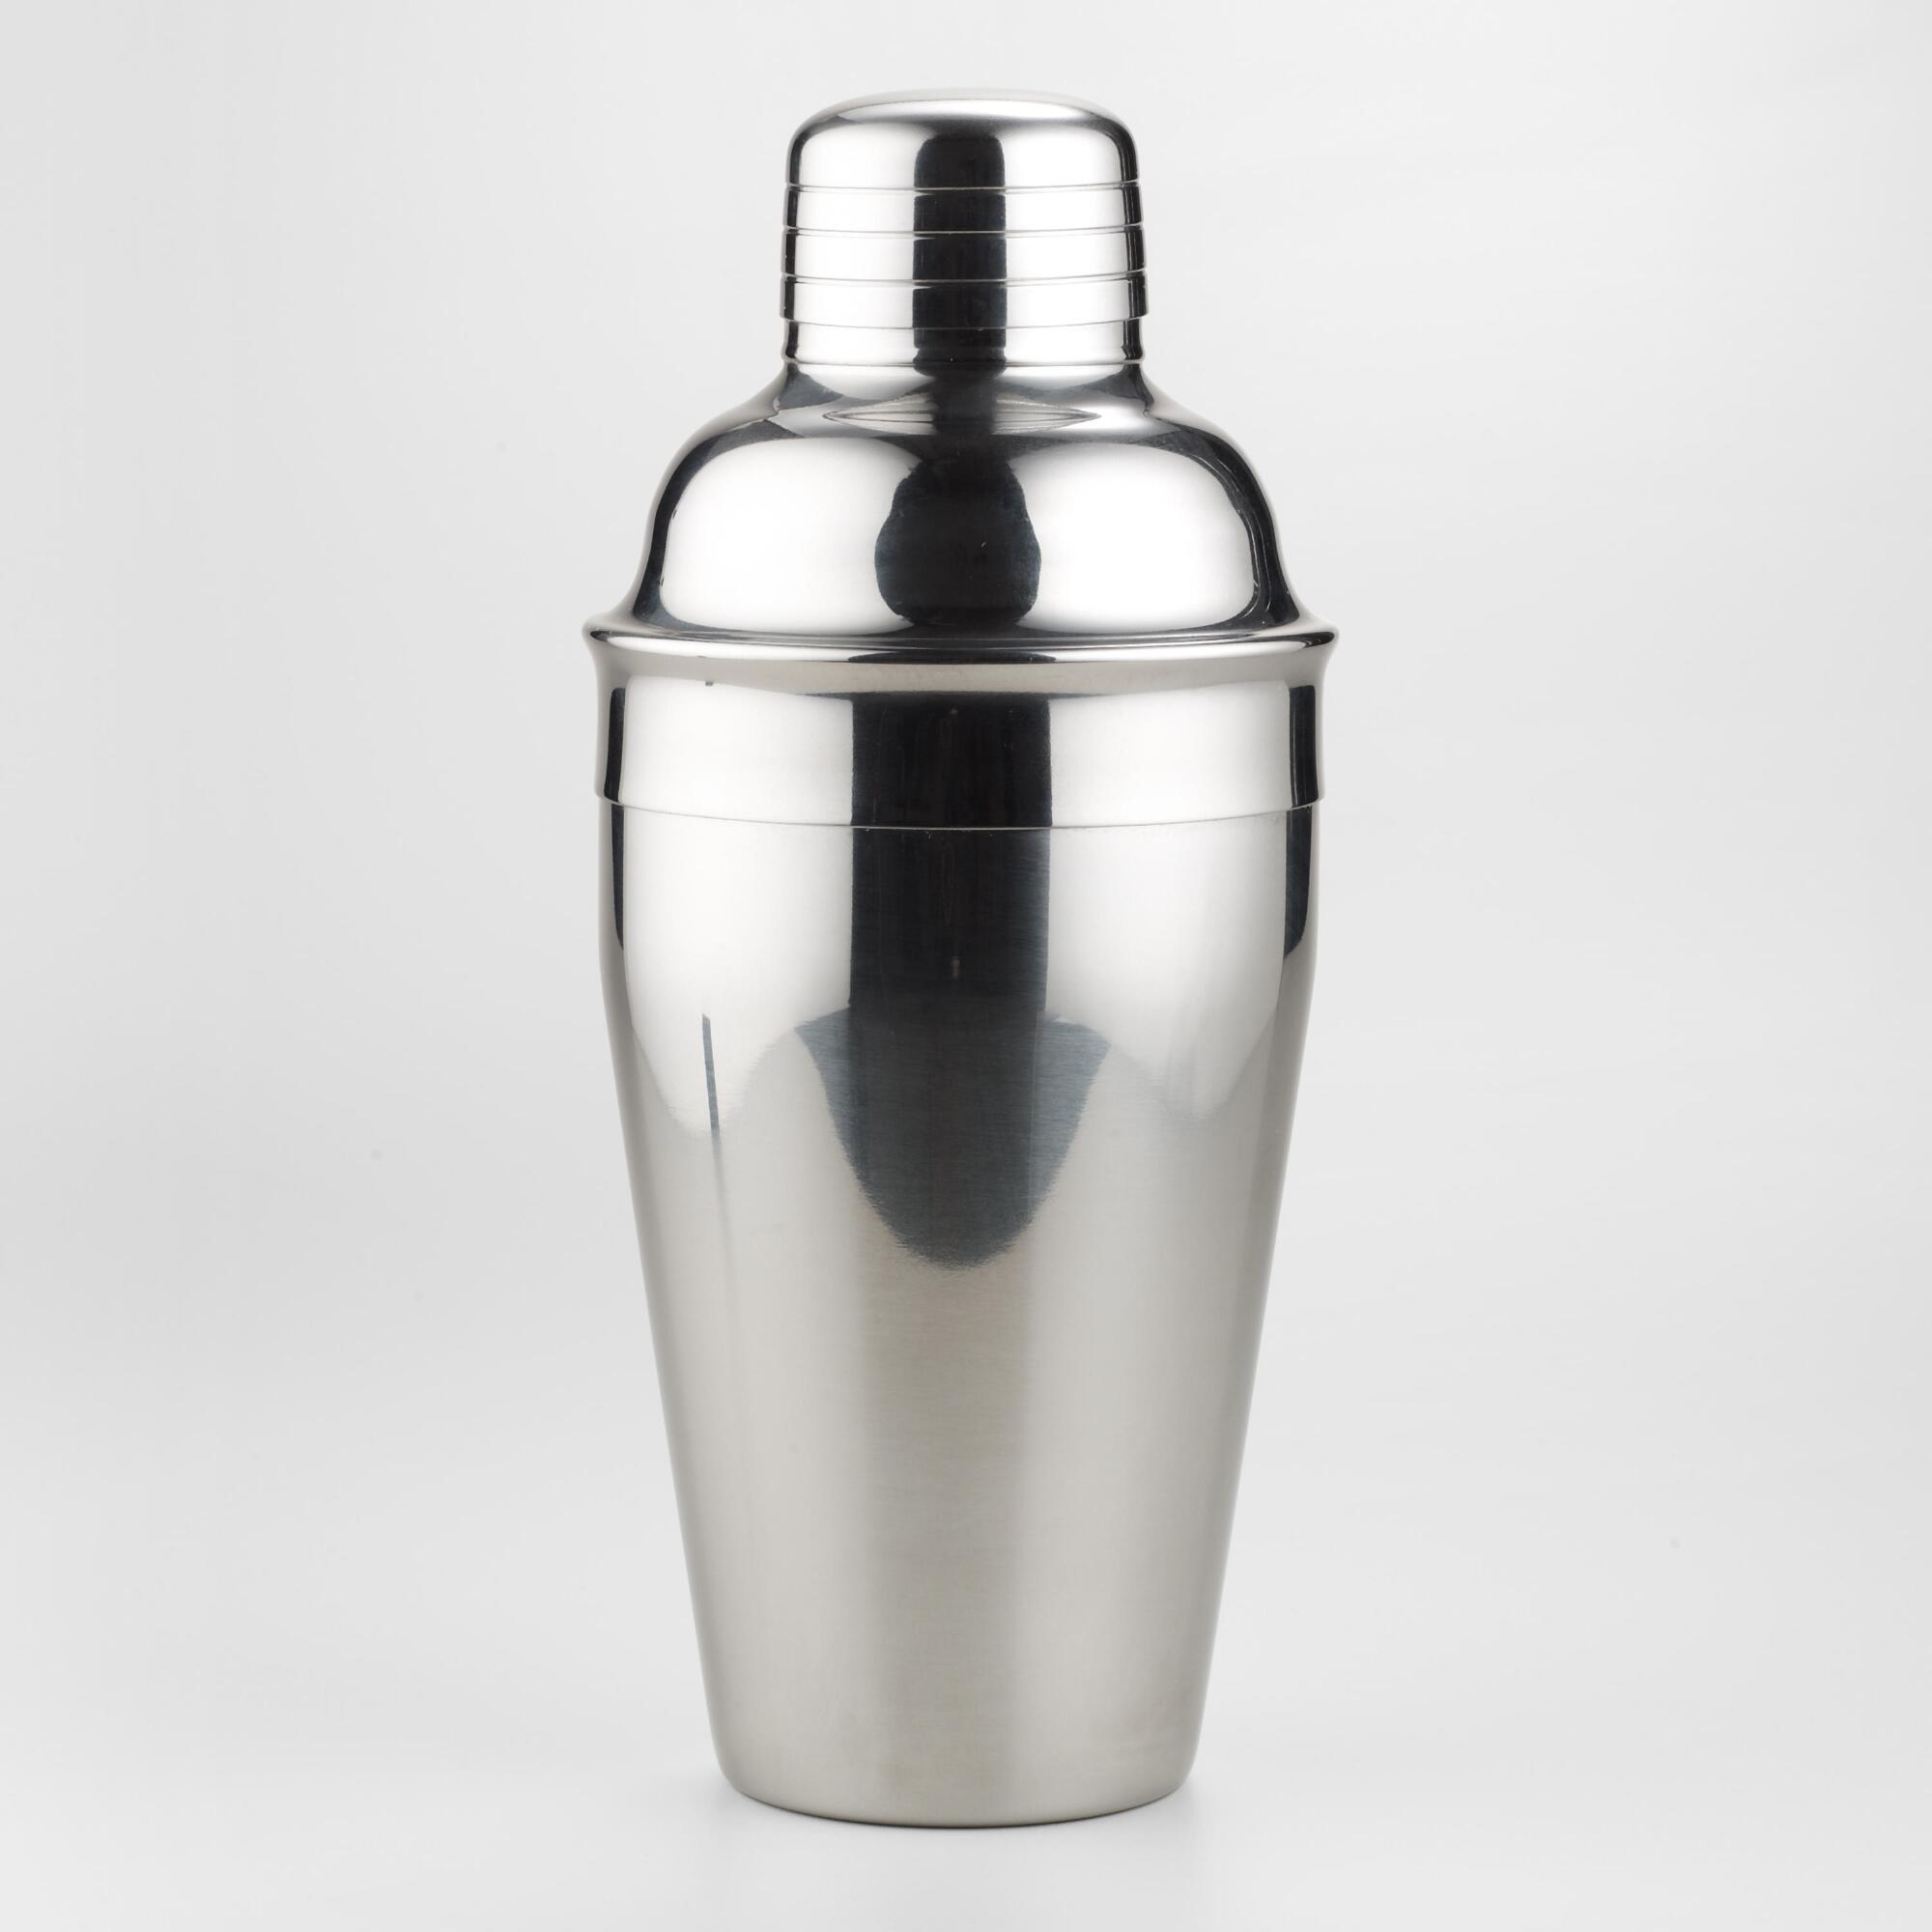 Stainless Steel Cocktail Shaker from Cost Plus World Market